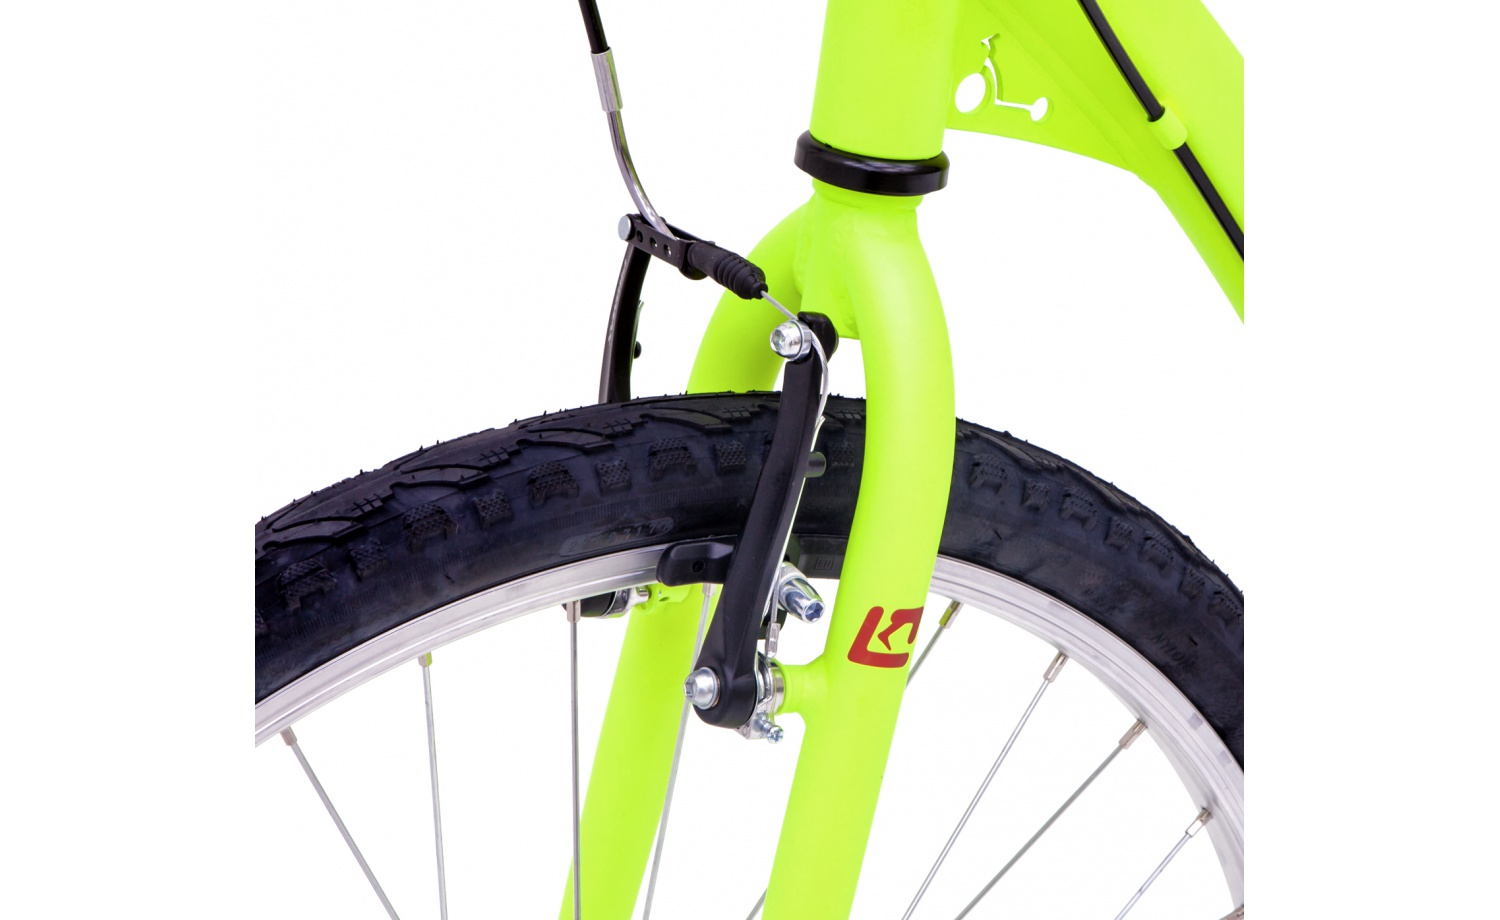 Footbike KOSTKA TOUR FUN DEORE (G5) - Limited edition